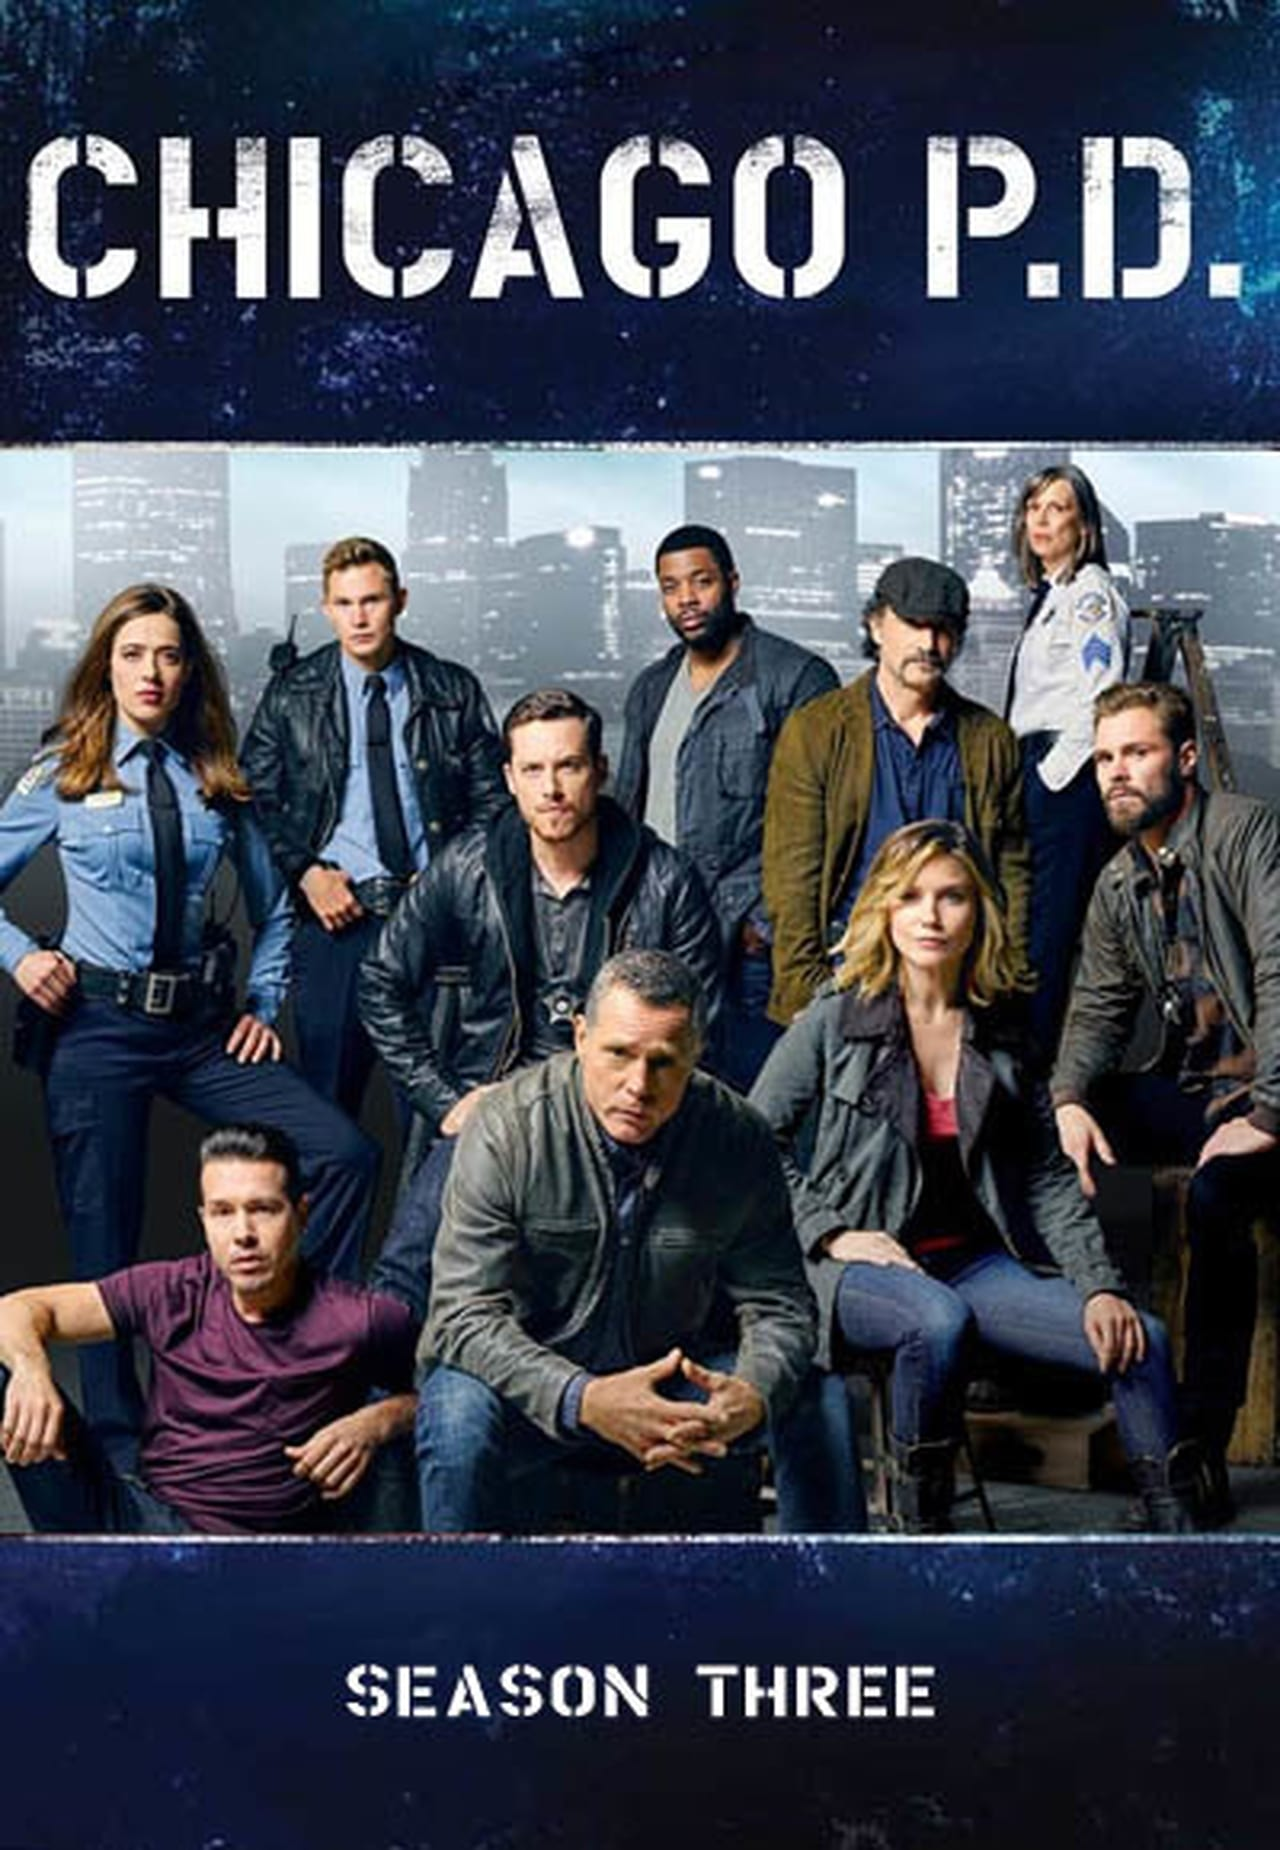 Putlocker Chicago P.d. Season 3 (2015)